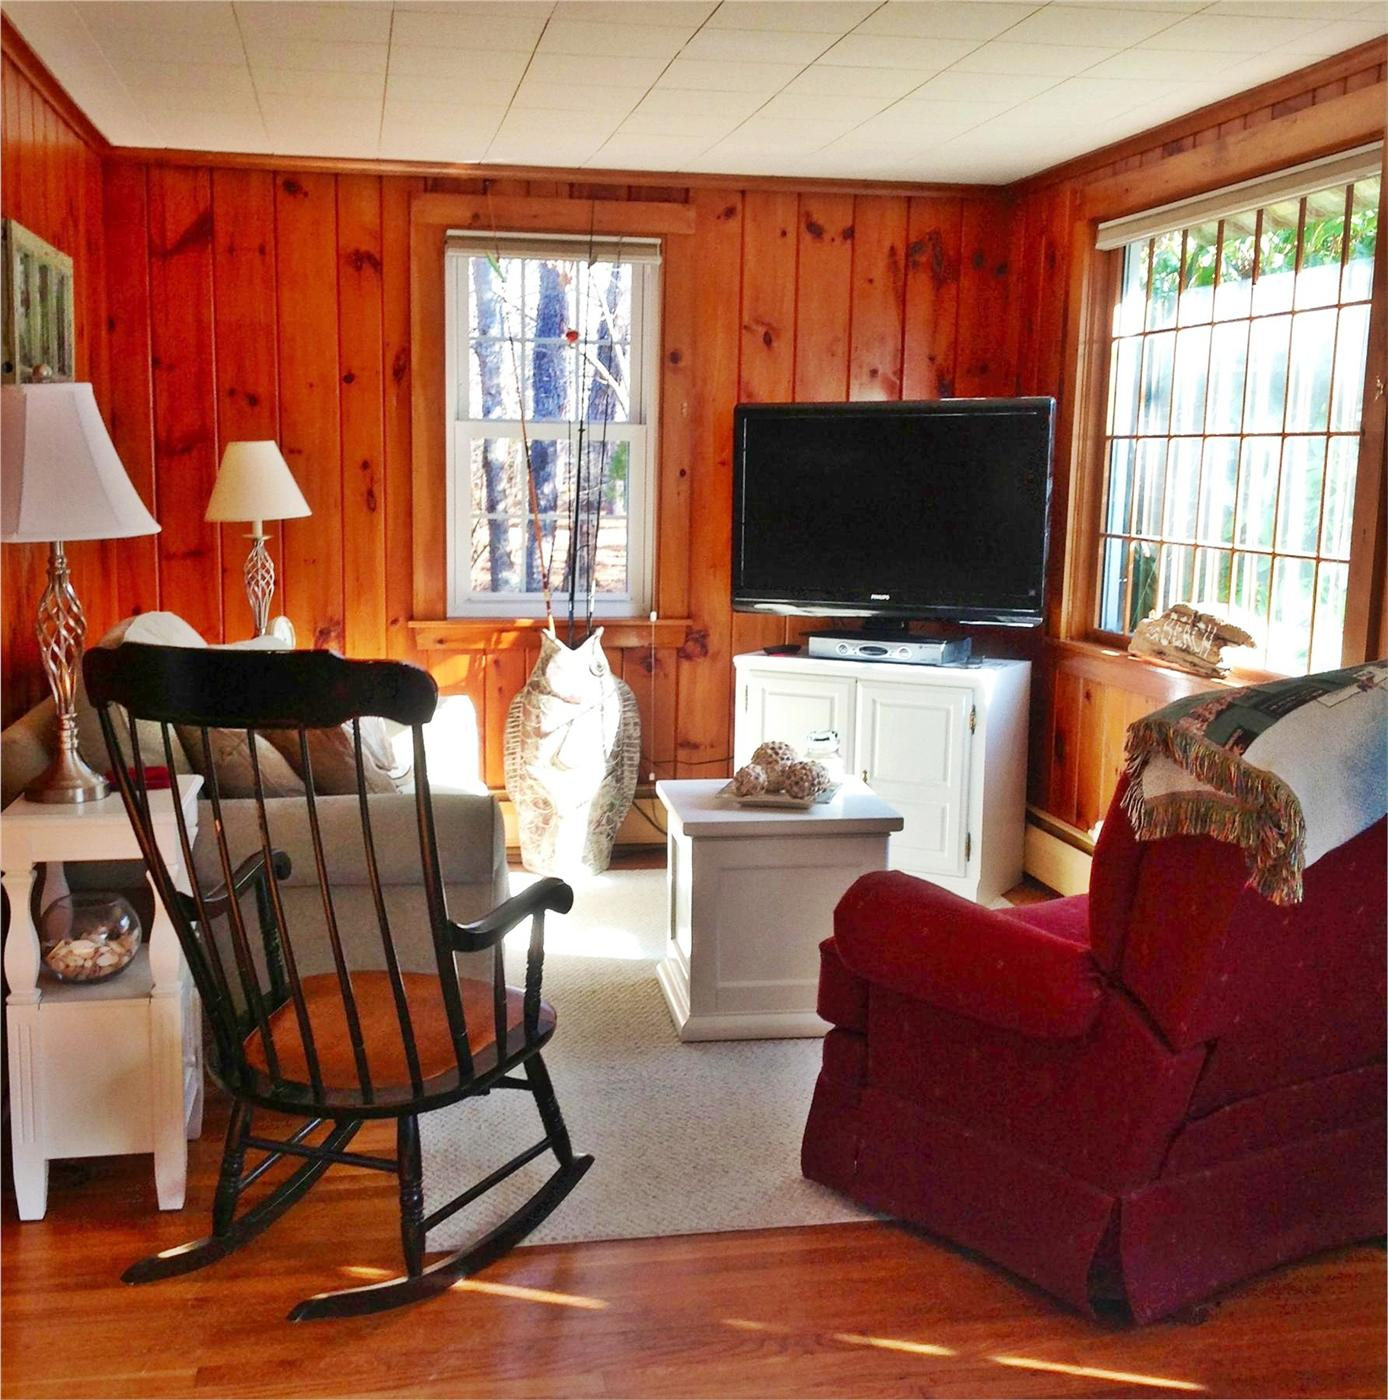 Eastham Vacation Rental Home In Cape Cod MA 02642